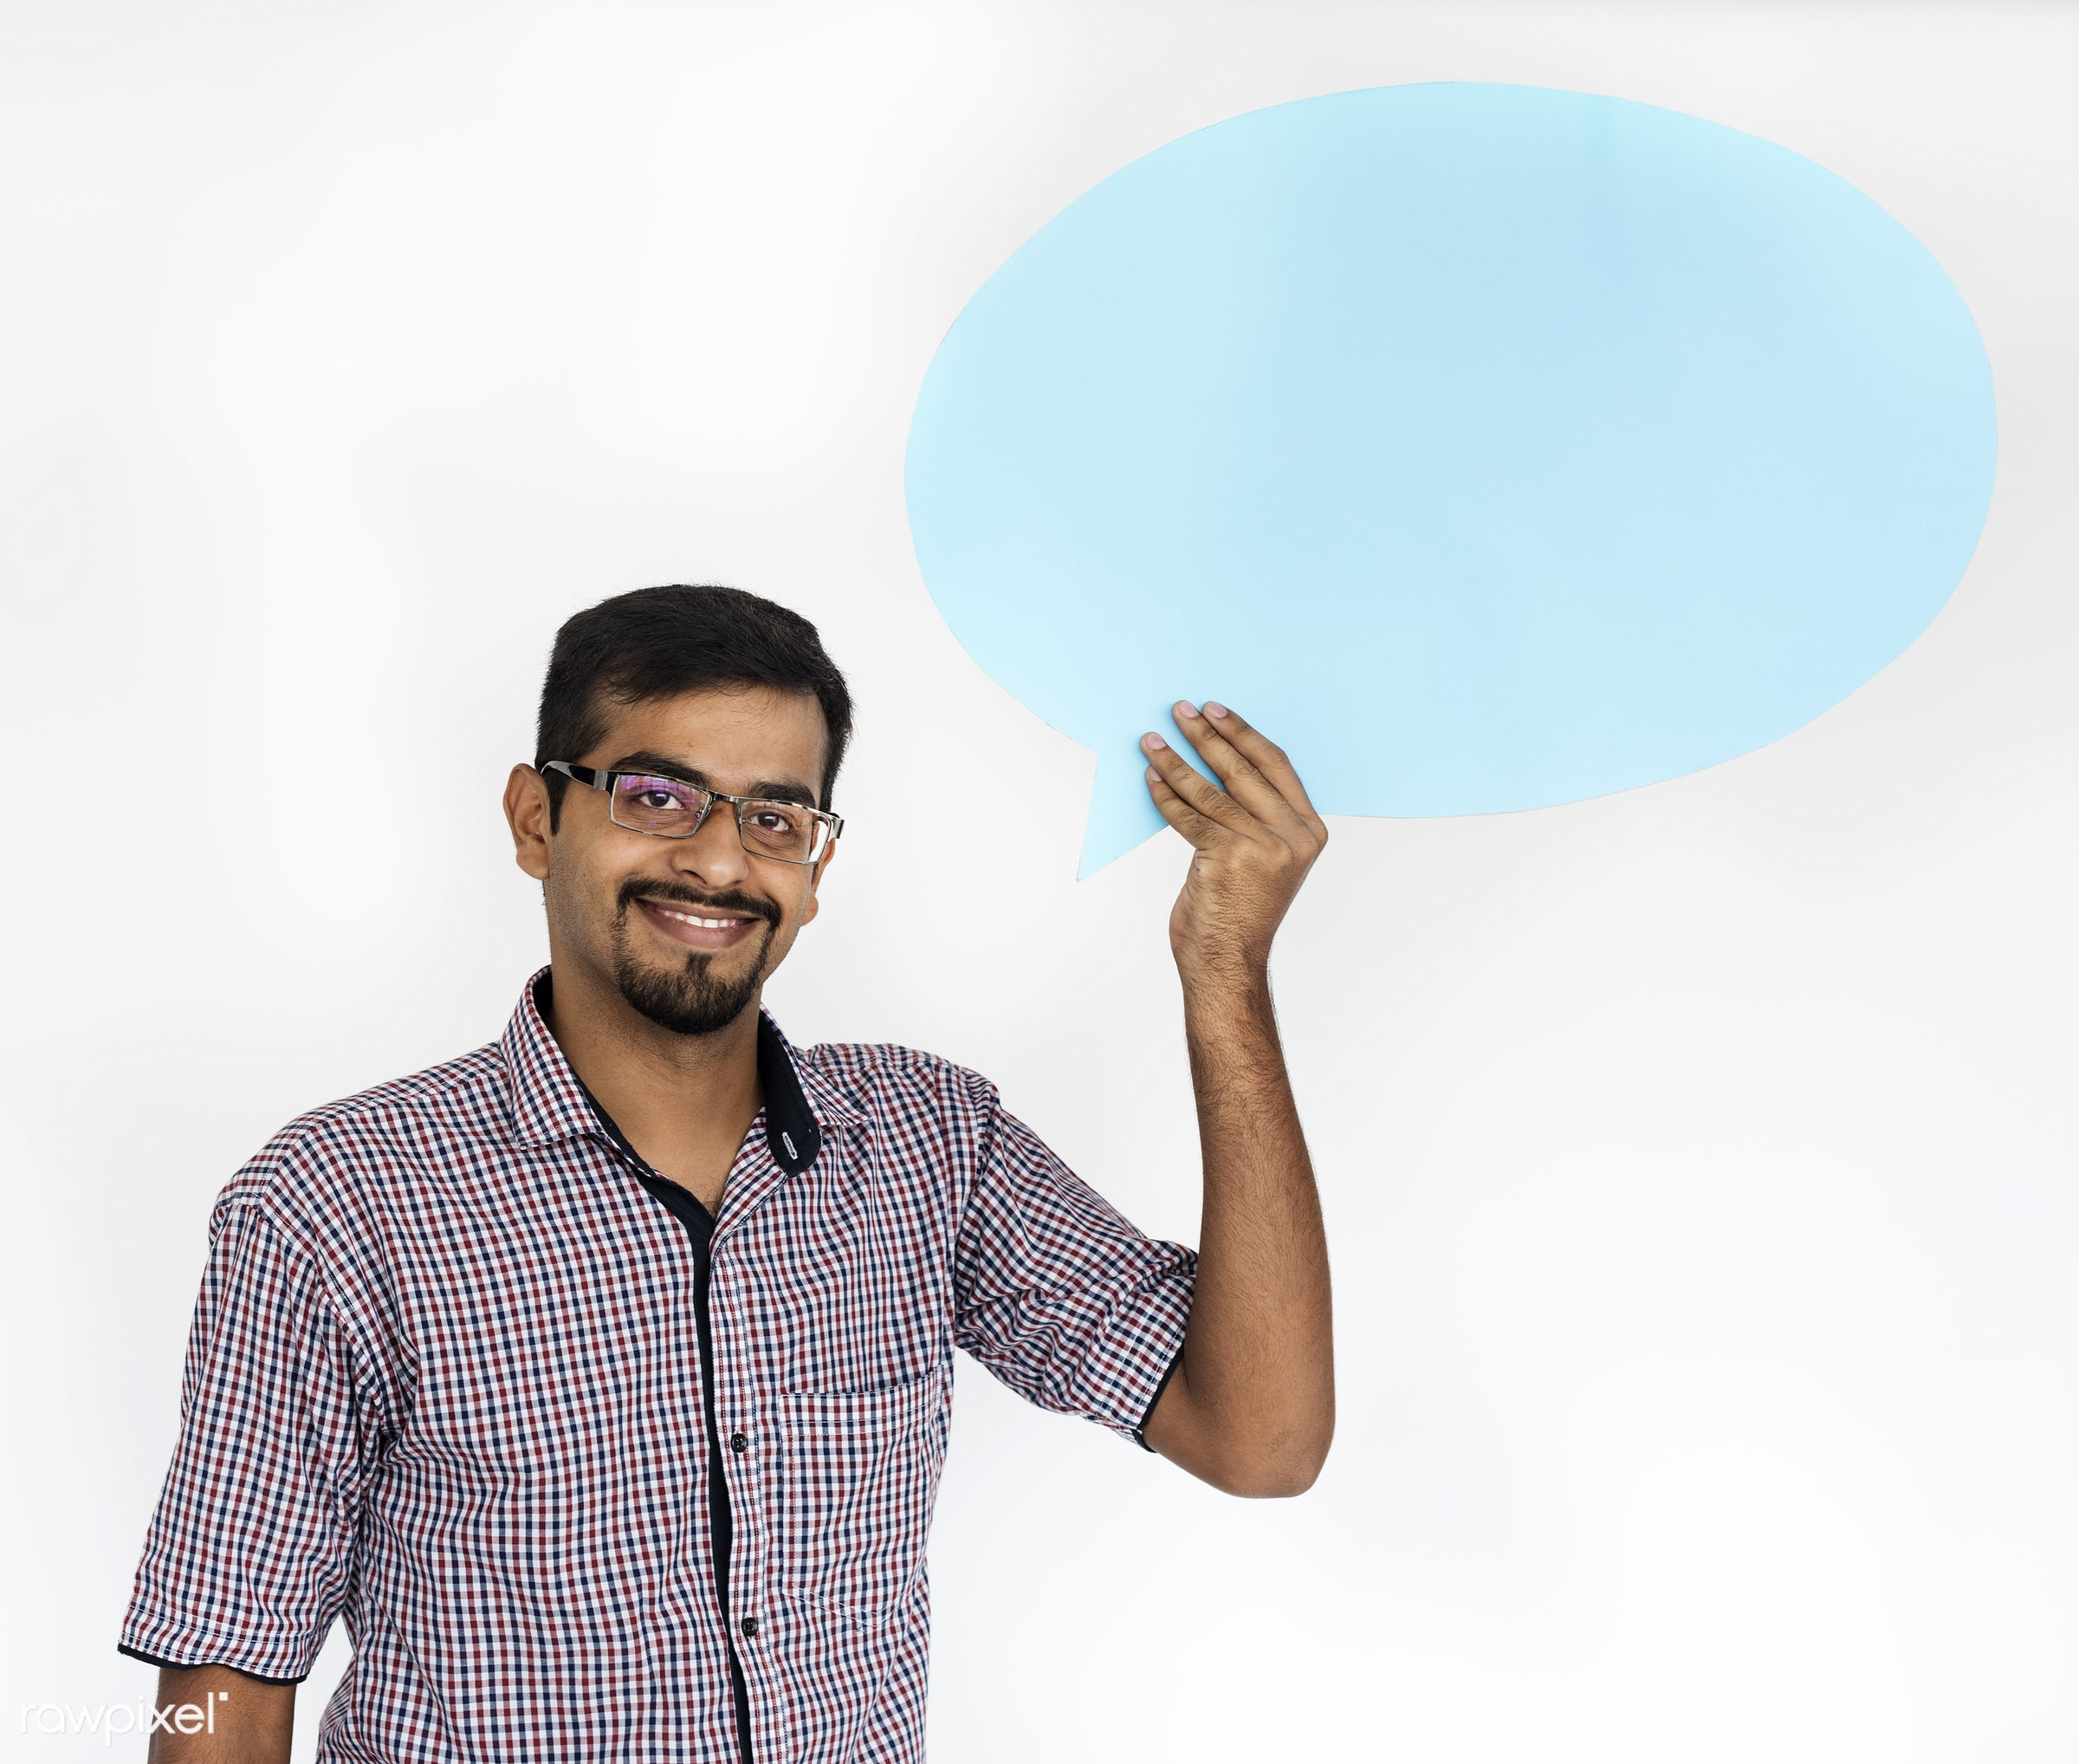 studio, person, holding, show, people, displaying, placard, empty, smile, positive, cheerful, smiling, copy, isolated, hold...